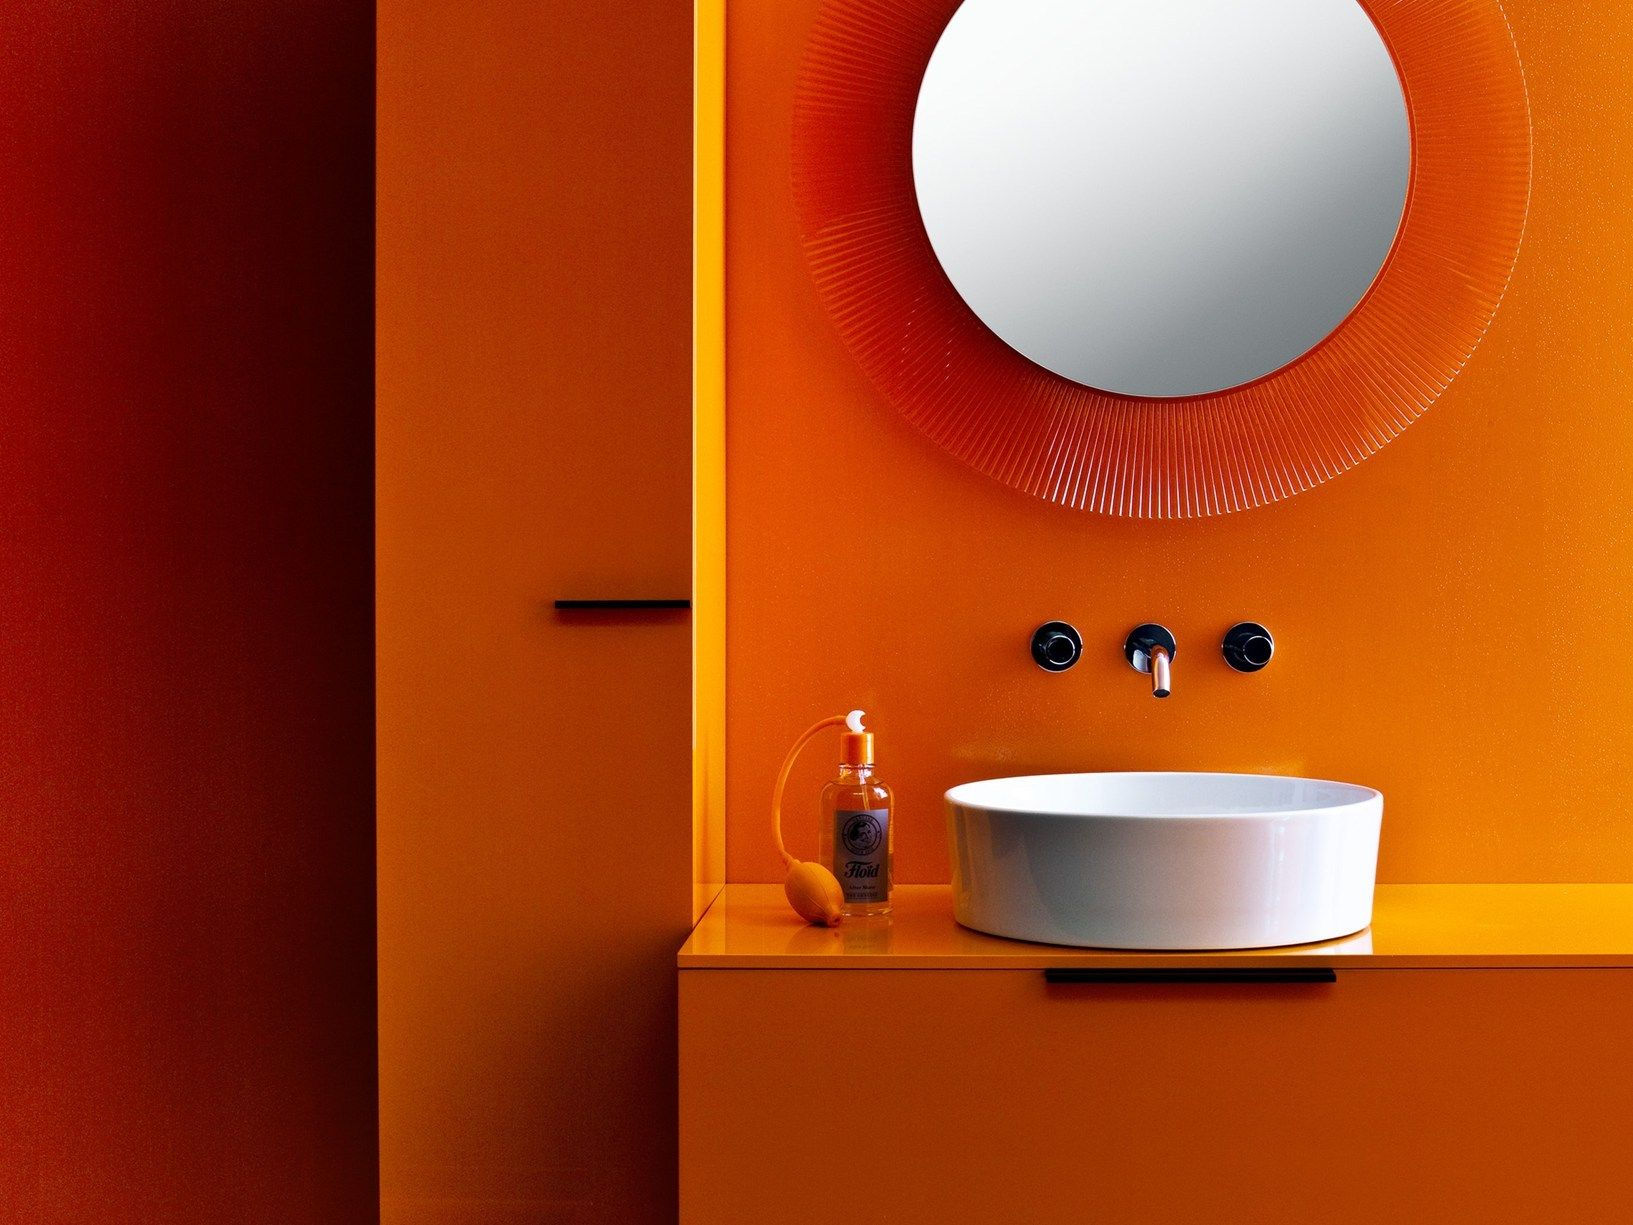 Kartell By Laufen Saphirkeramik.Kartell And Laufen The New Bathroom Project On Show At